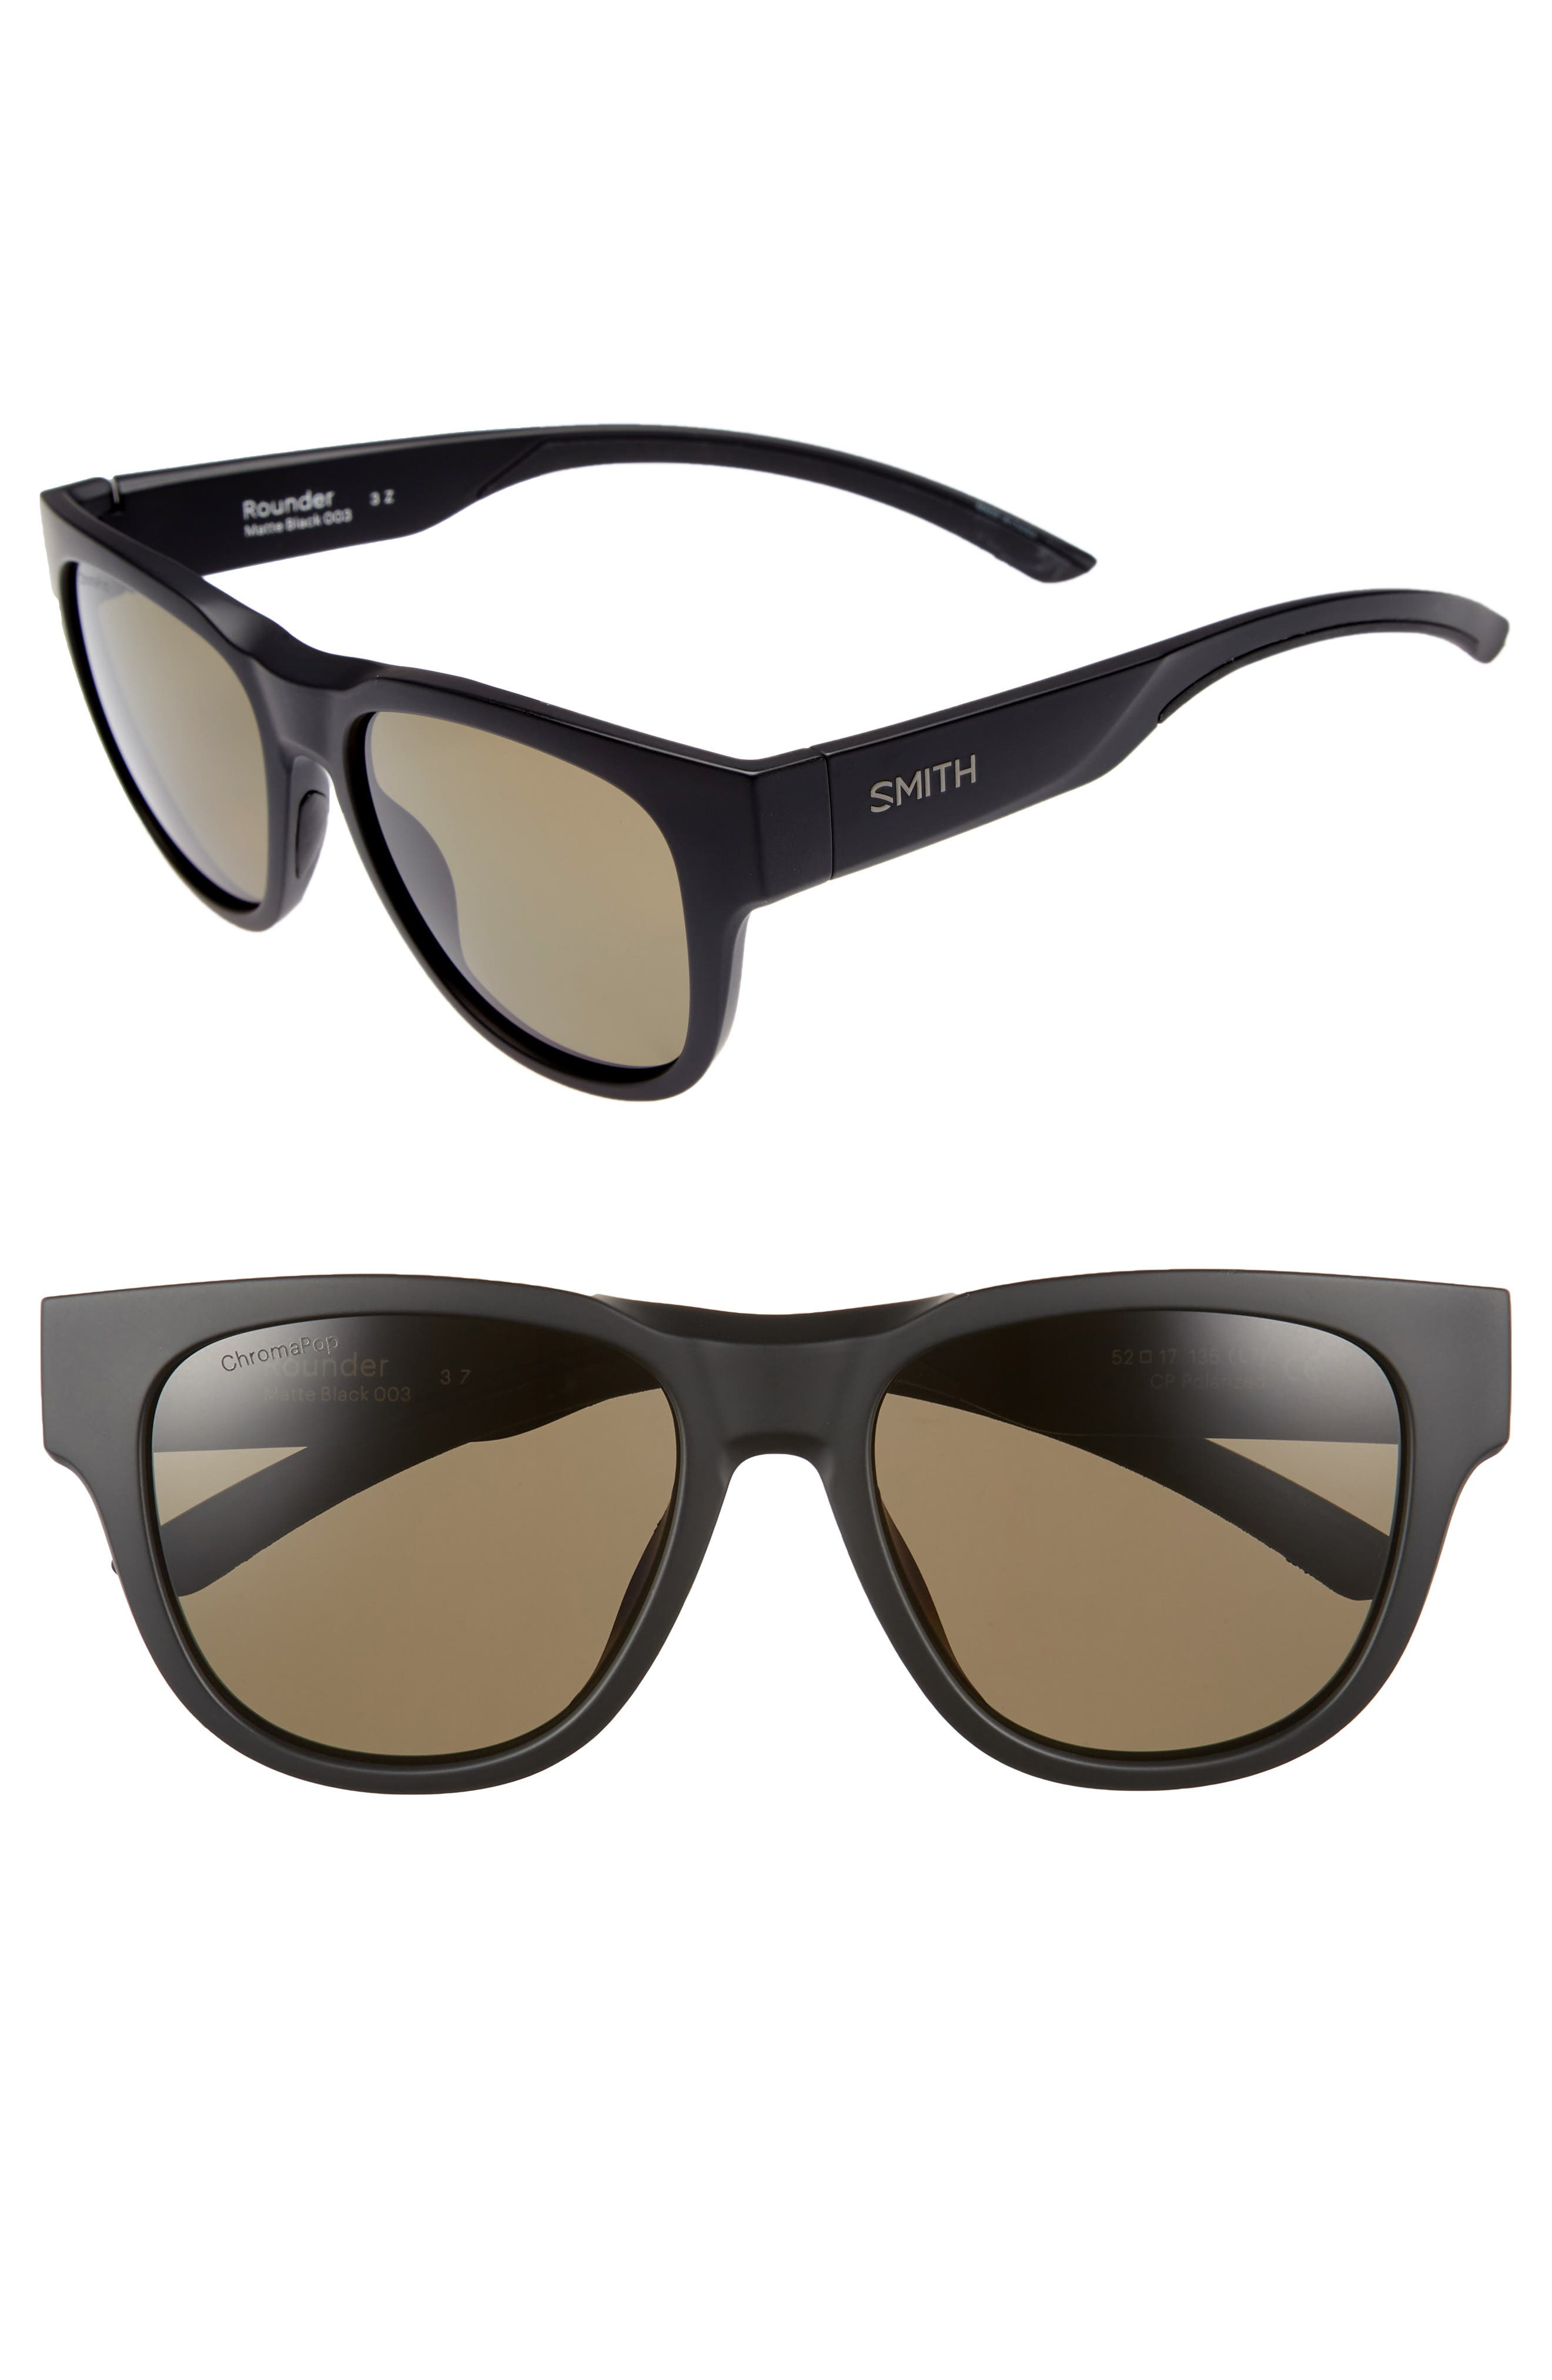 SMITH ROUNDER 52MM CHROMAPOP POLARIZED SUNGLASSES - MATTE BLACK